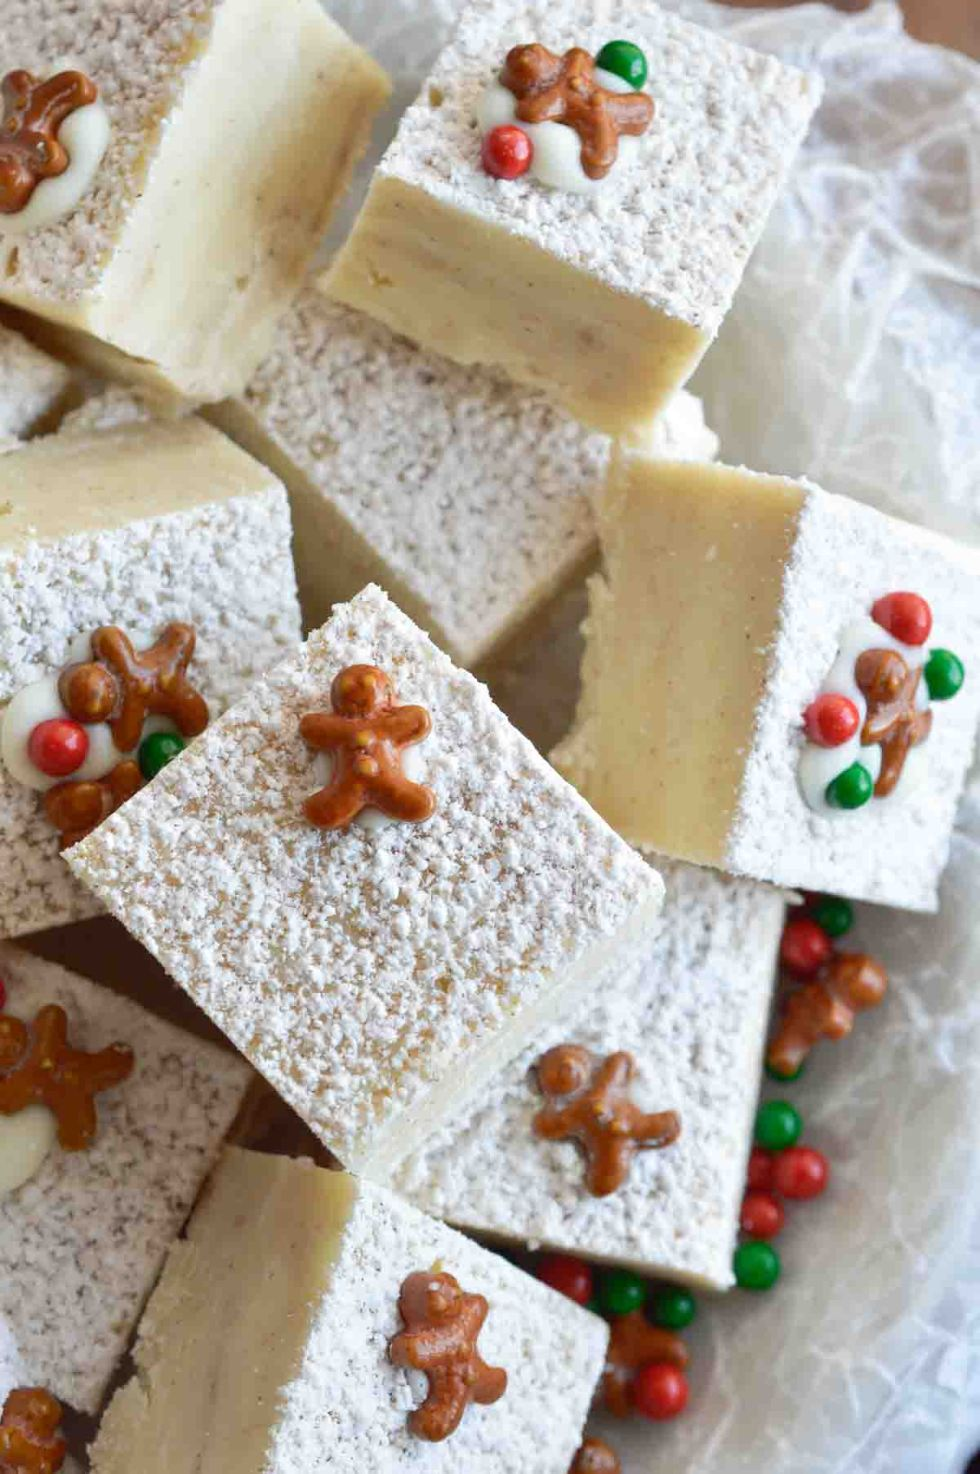 This White Chocolate Gingerbread Fudge is a fun holiday dessert. This quick and easy microwave fudge will be a new favorite holiday treat!